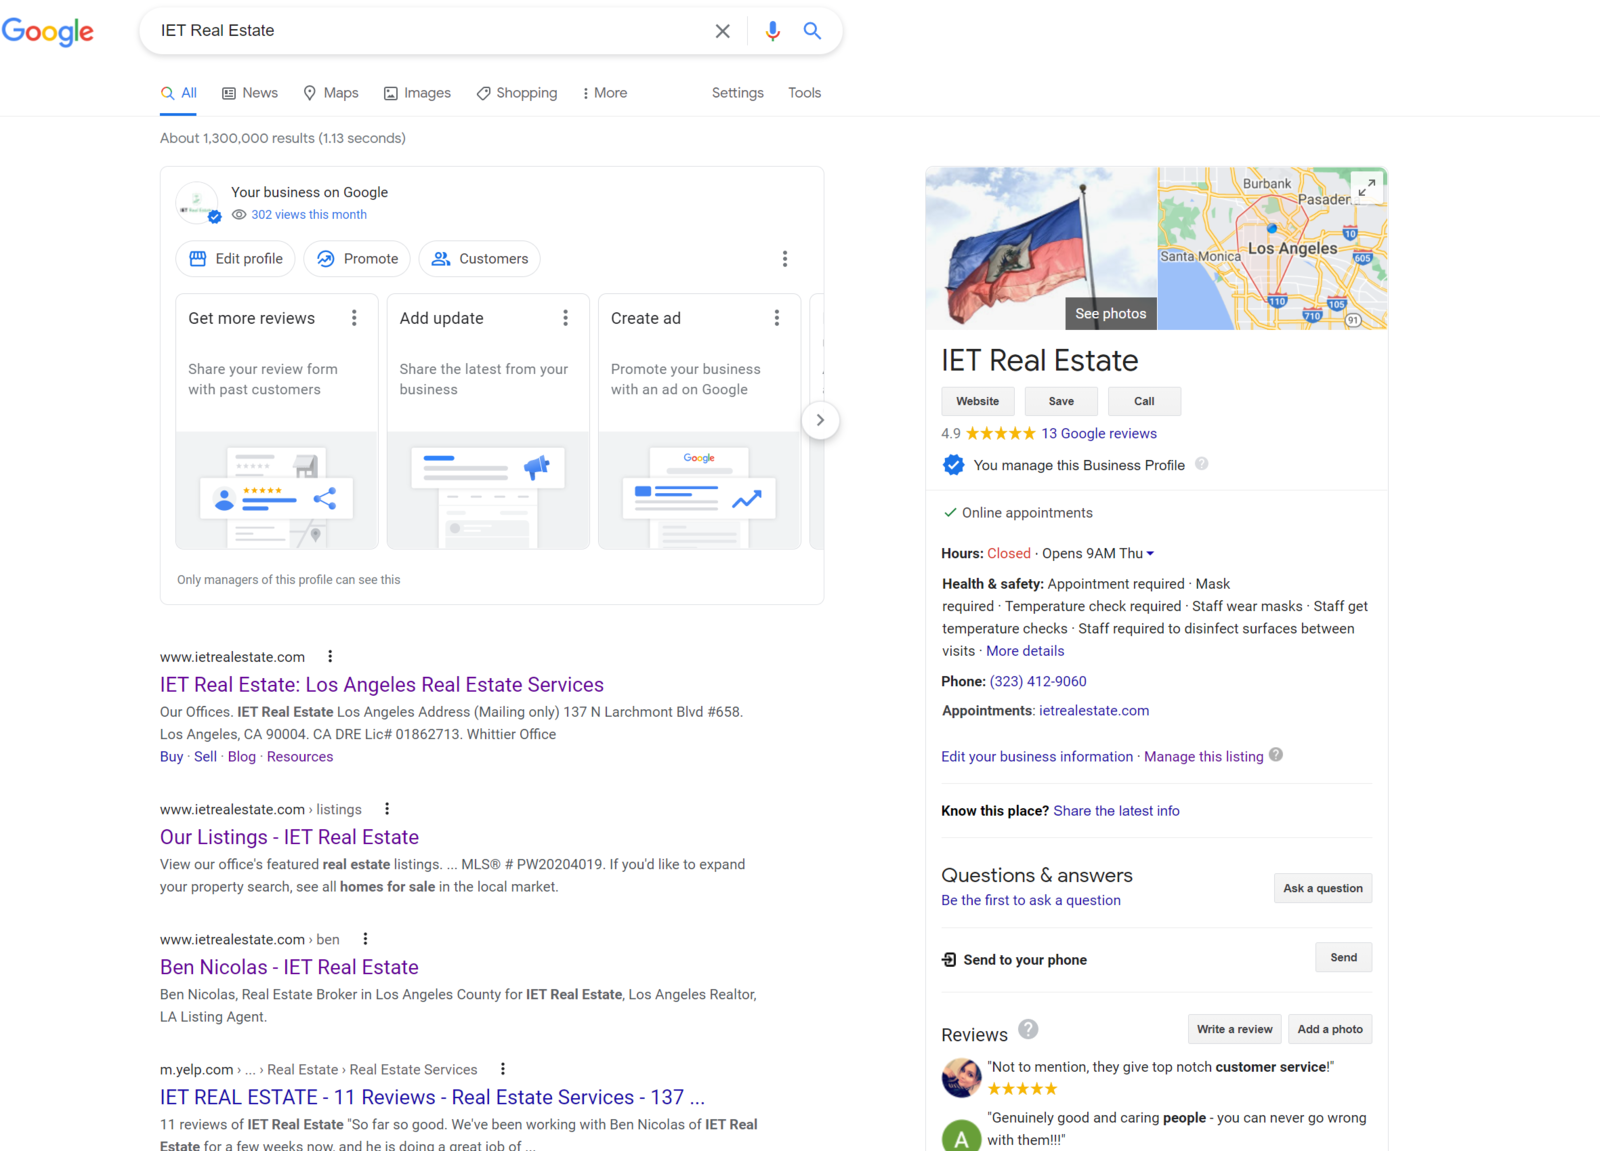 What I get when logged into Google.png